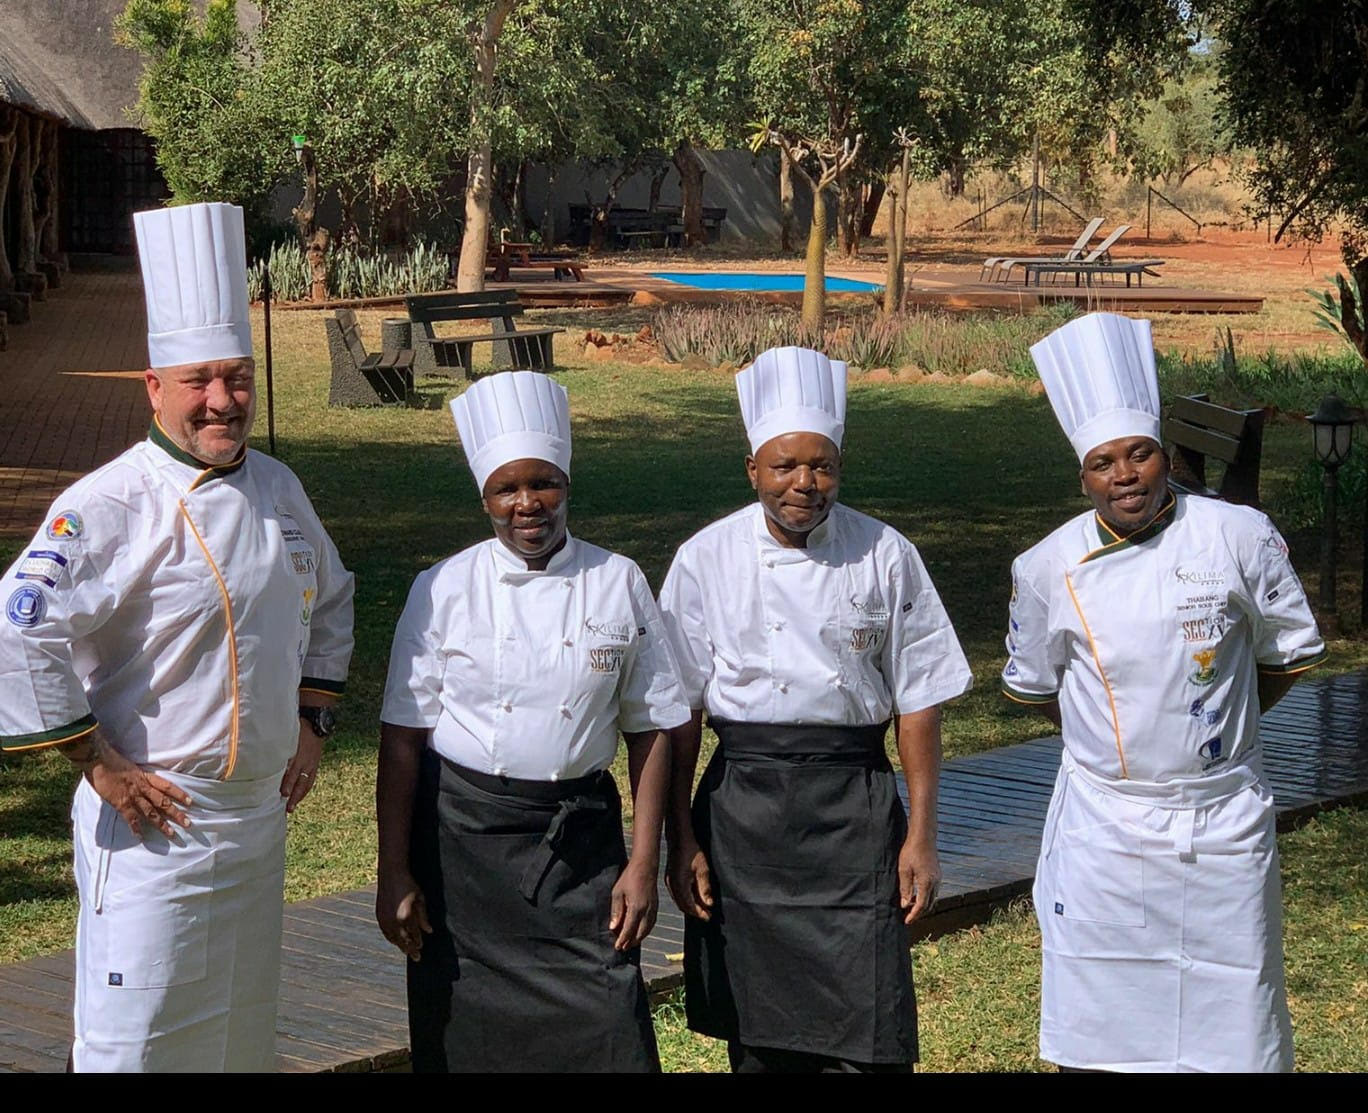 Chef Edward Clegg and with other chefs